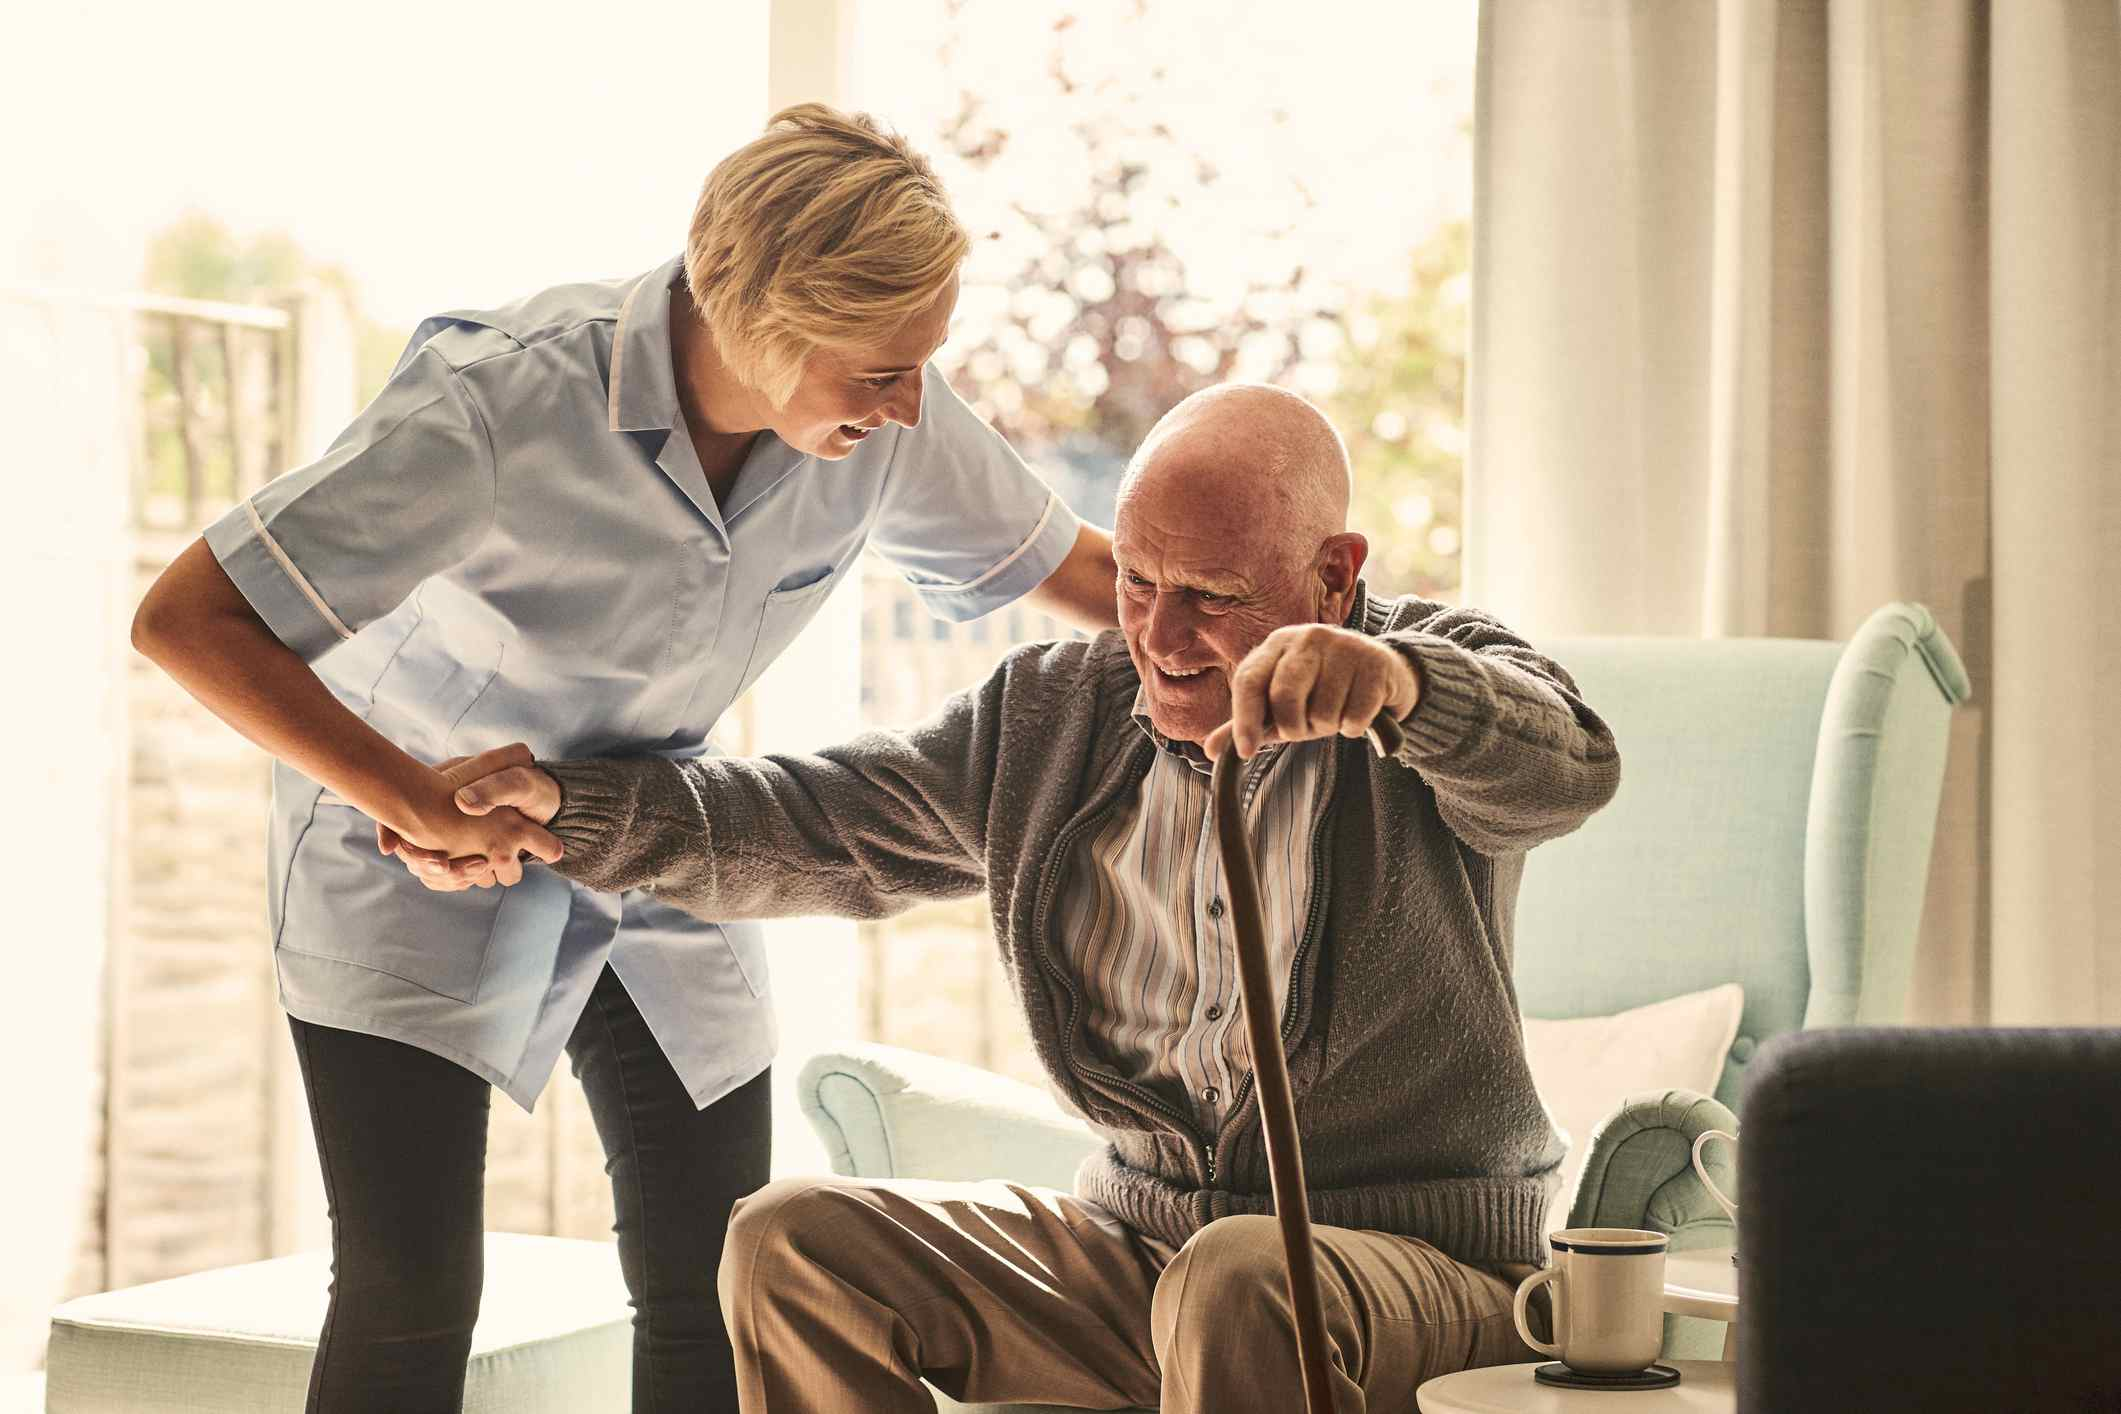 Female healthcare worker supporting senior man at care home